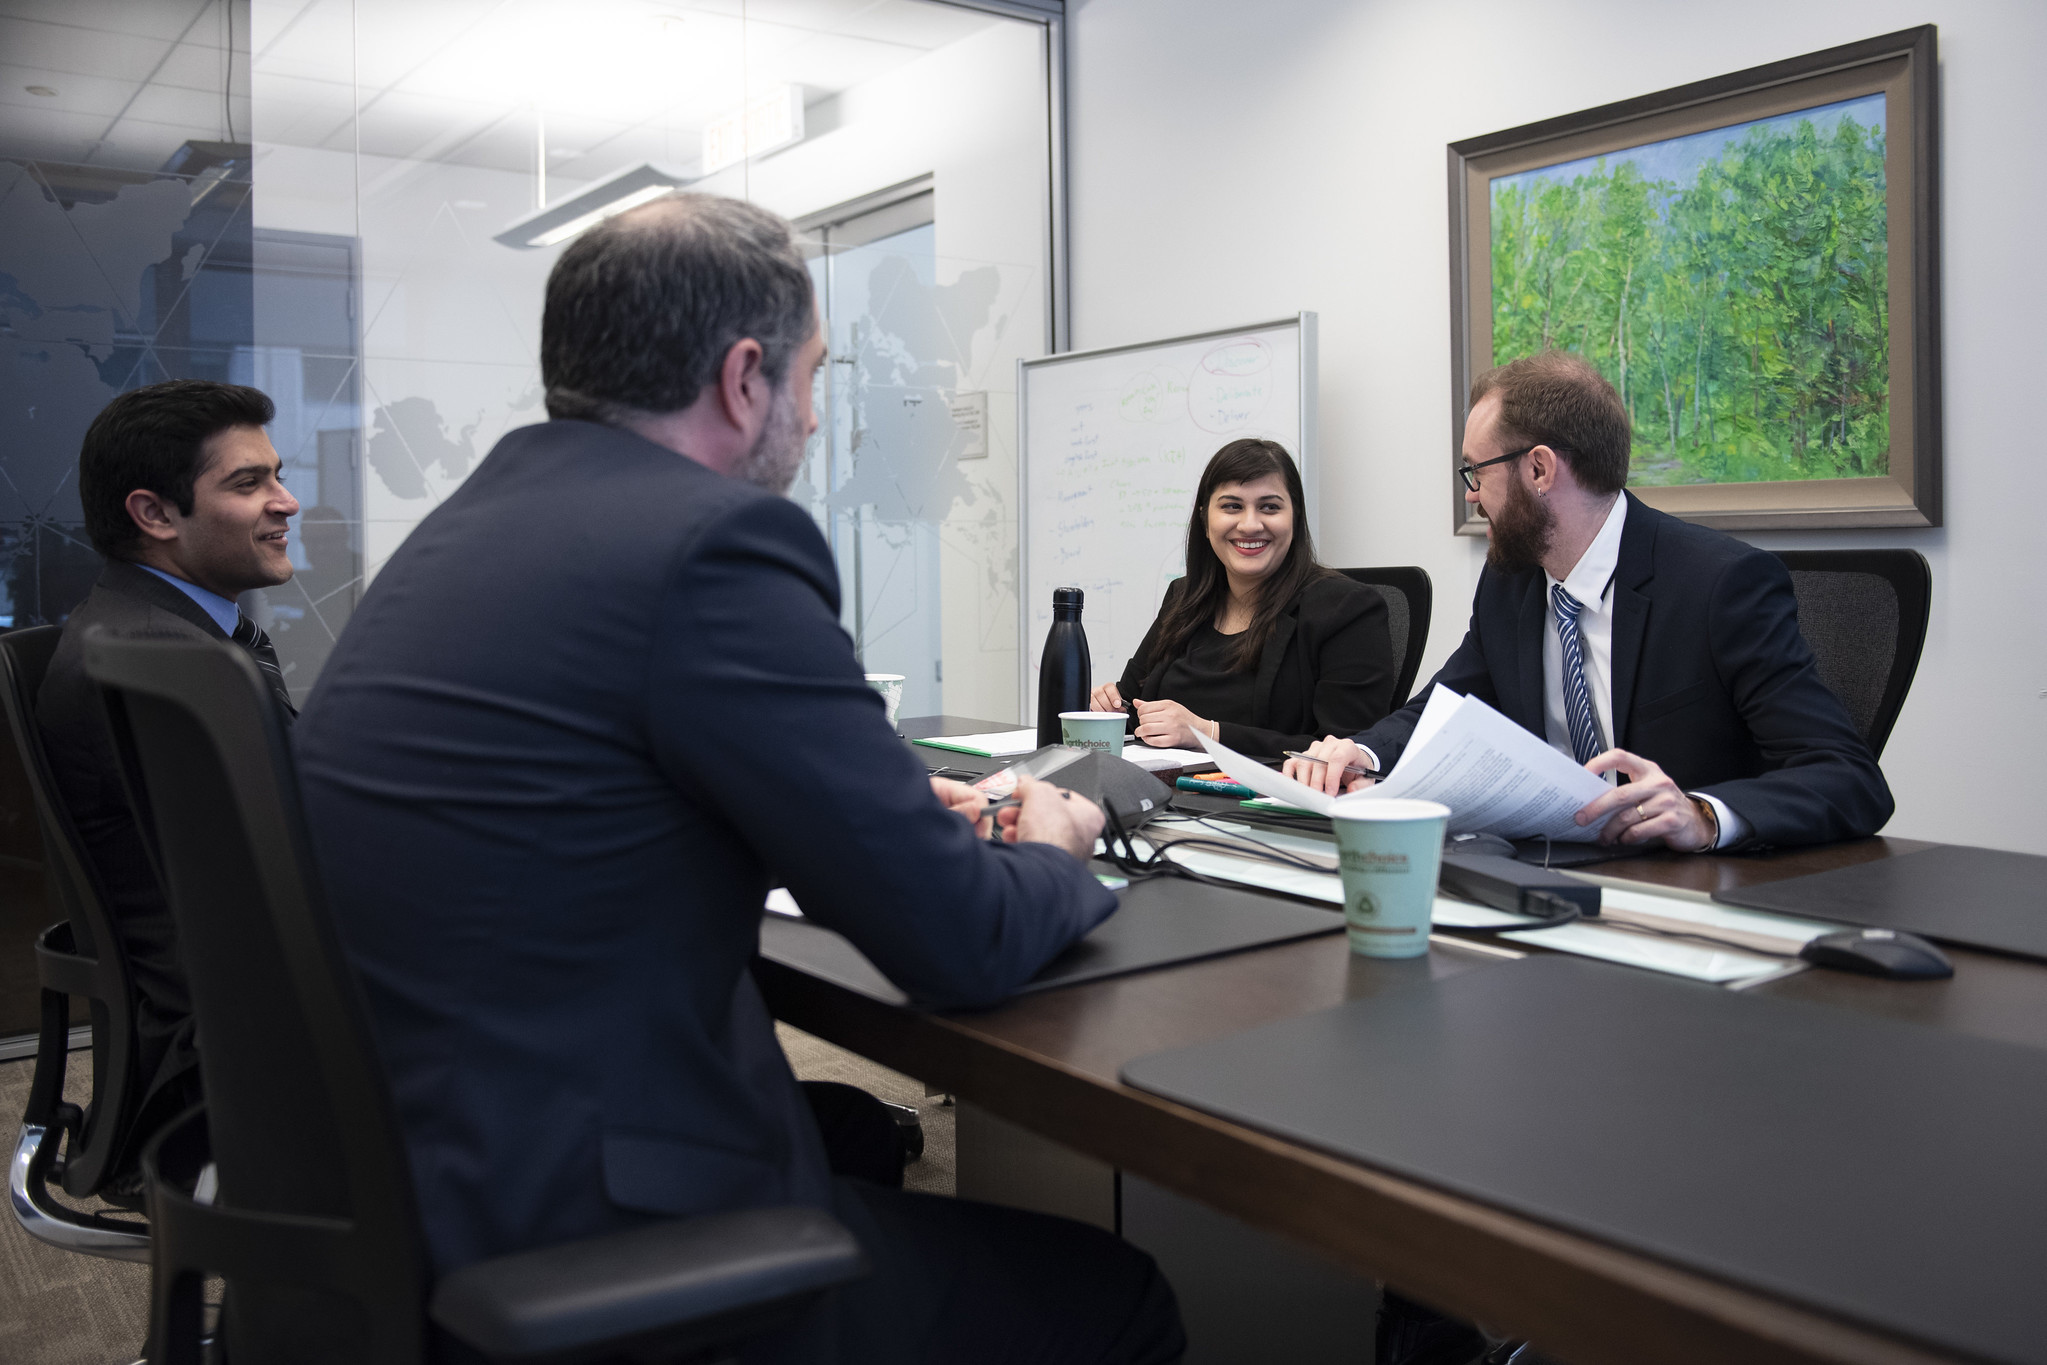 business people discussing around a conference table